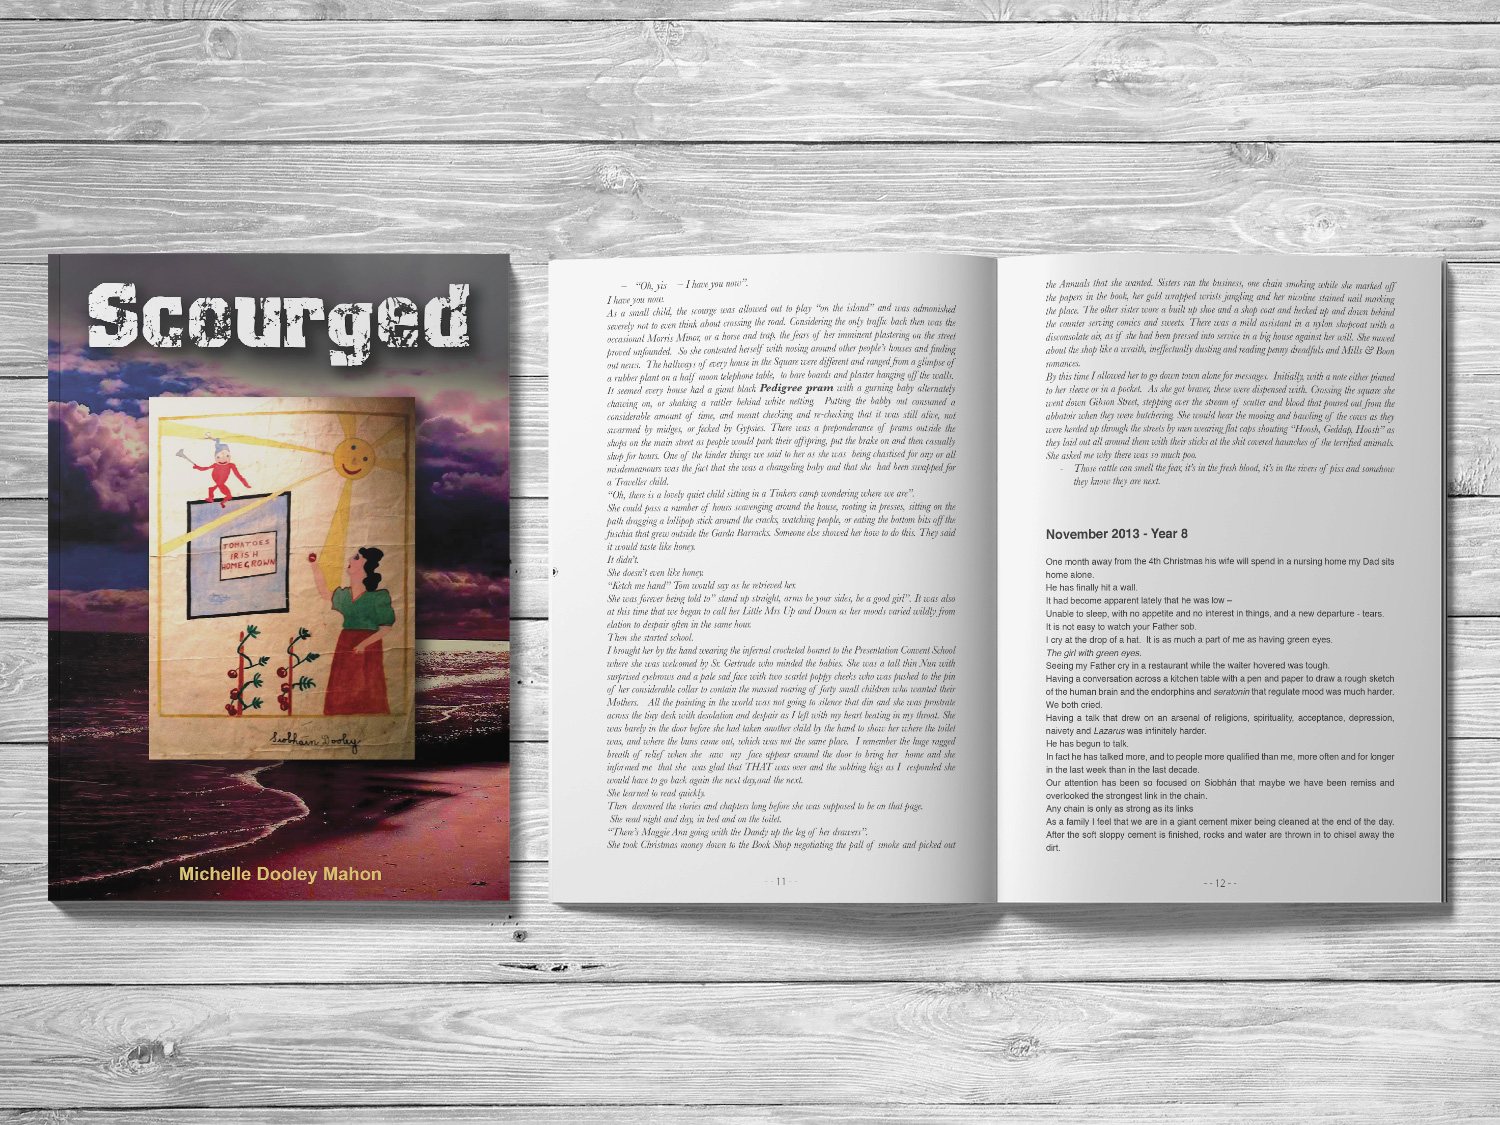 Scourged Book